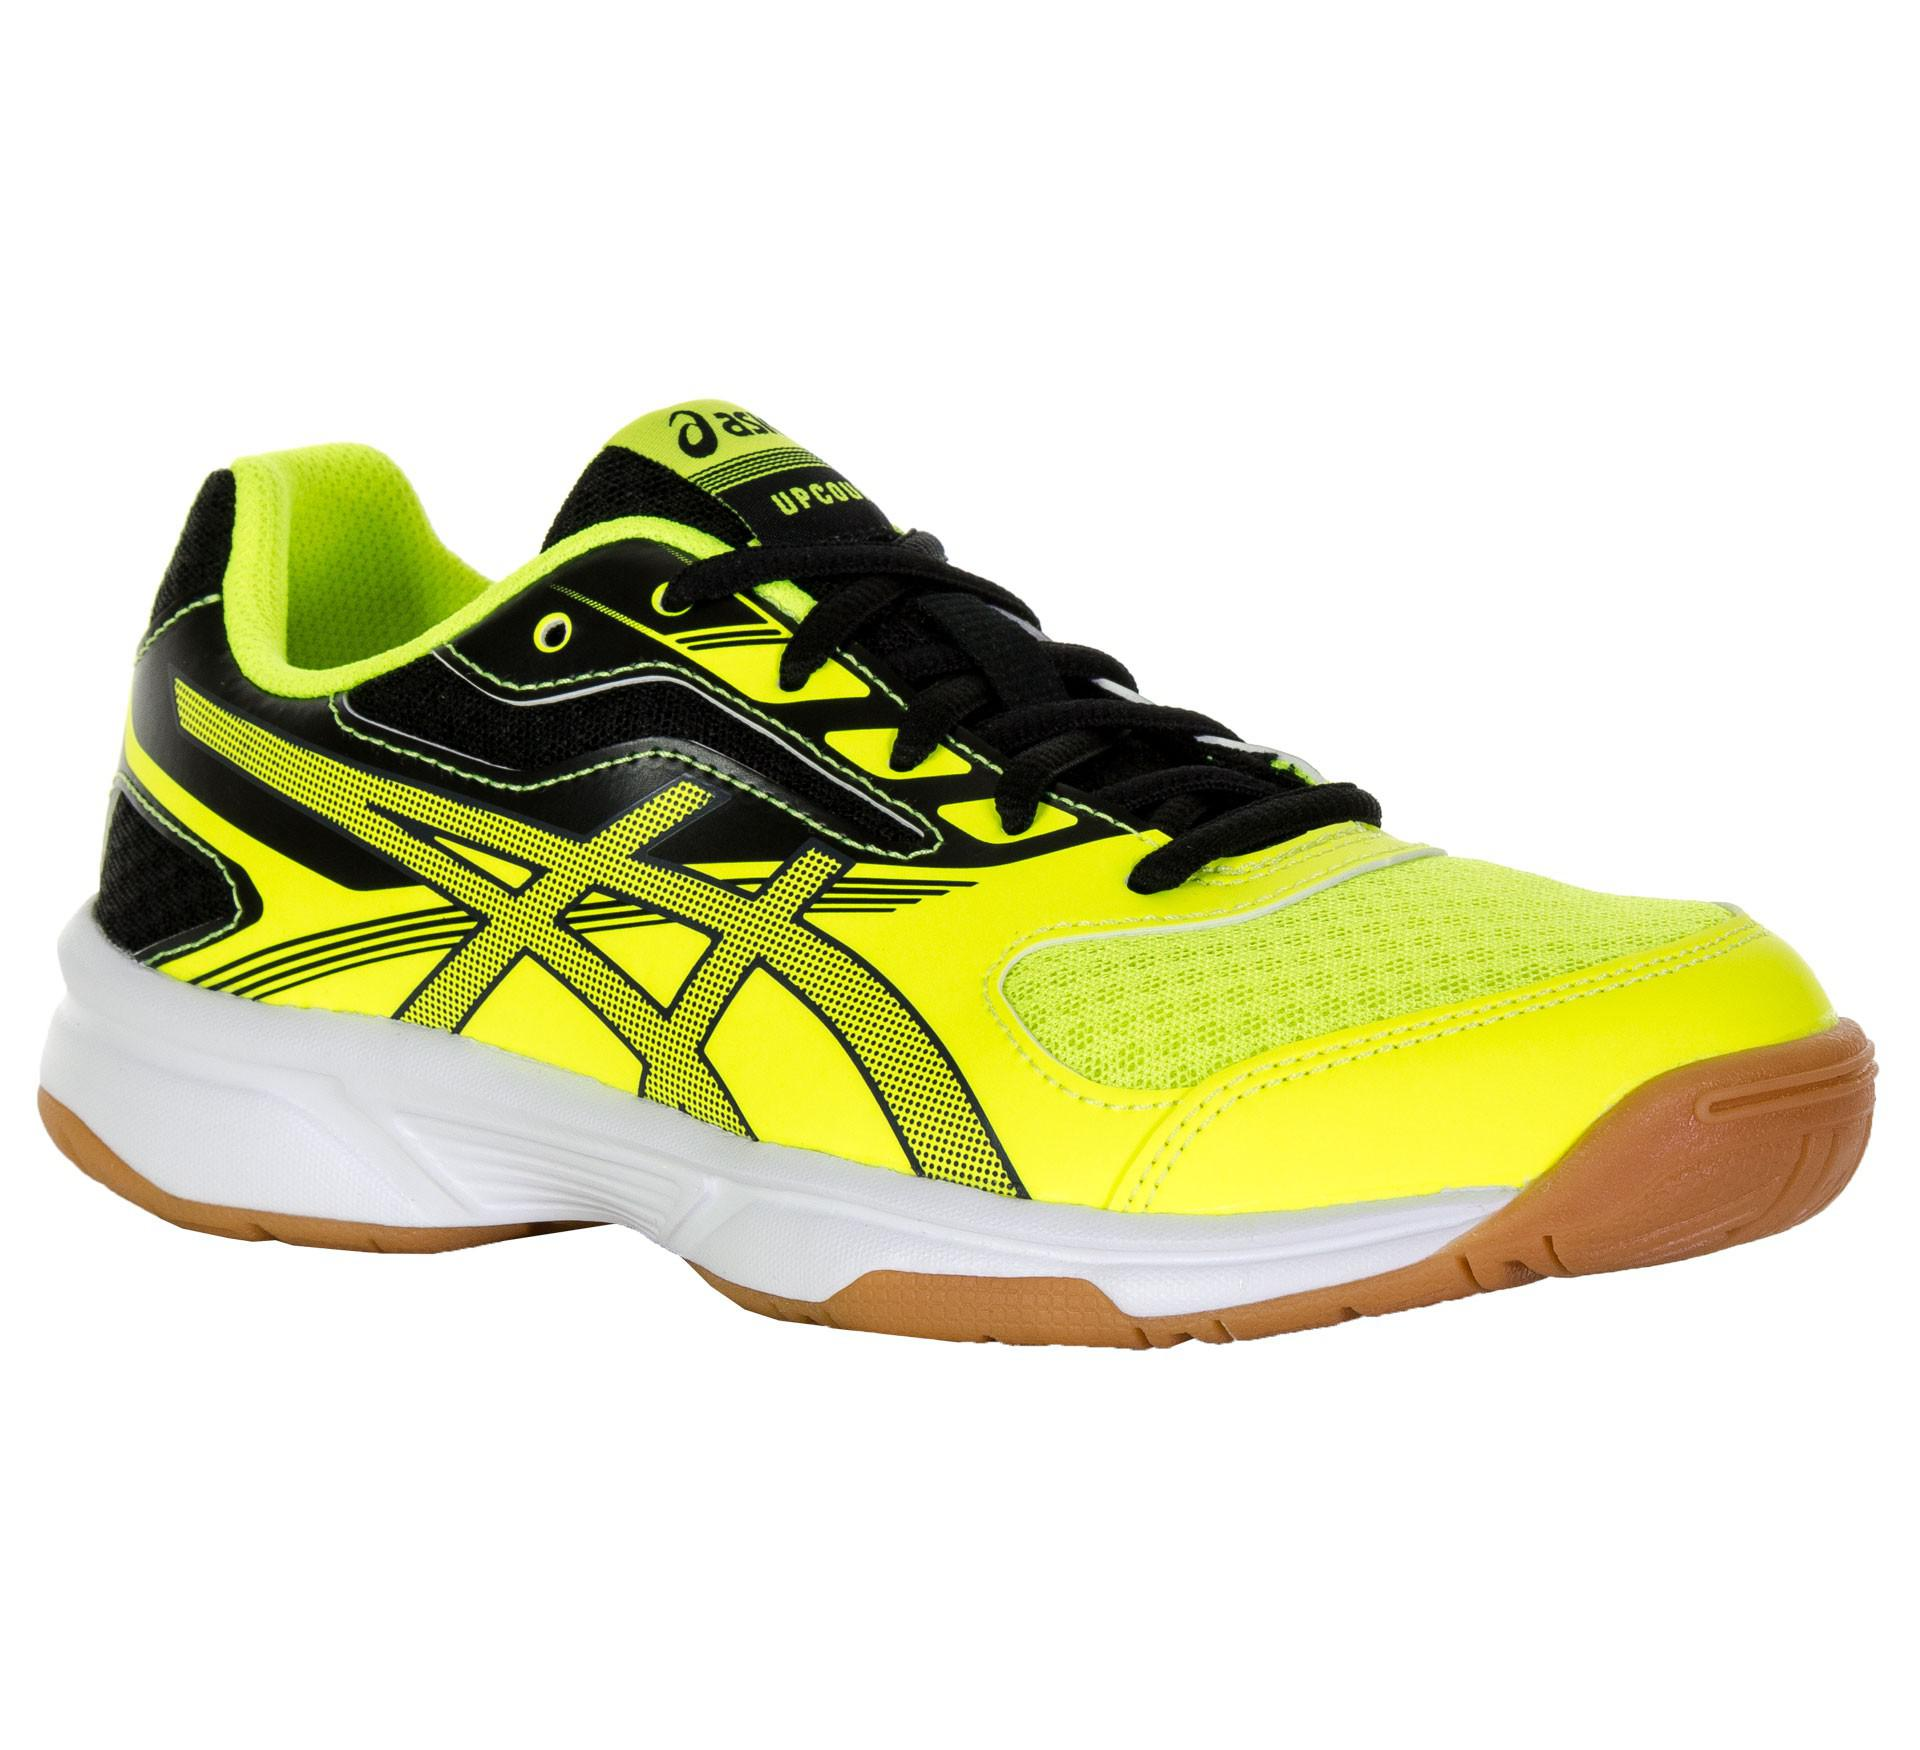 Asics Kids GEL-Upcourt 2 GS Squash Shoes - Safety Yellow Black ... 058d019efc8c4